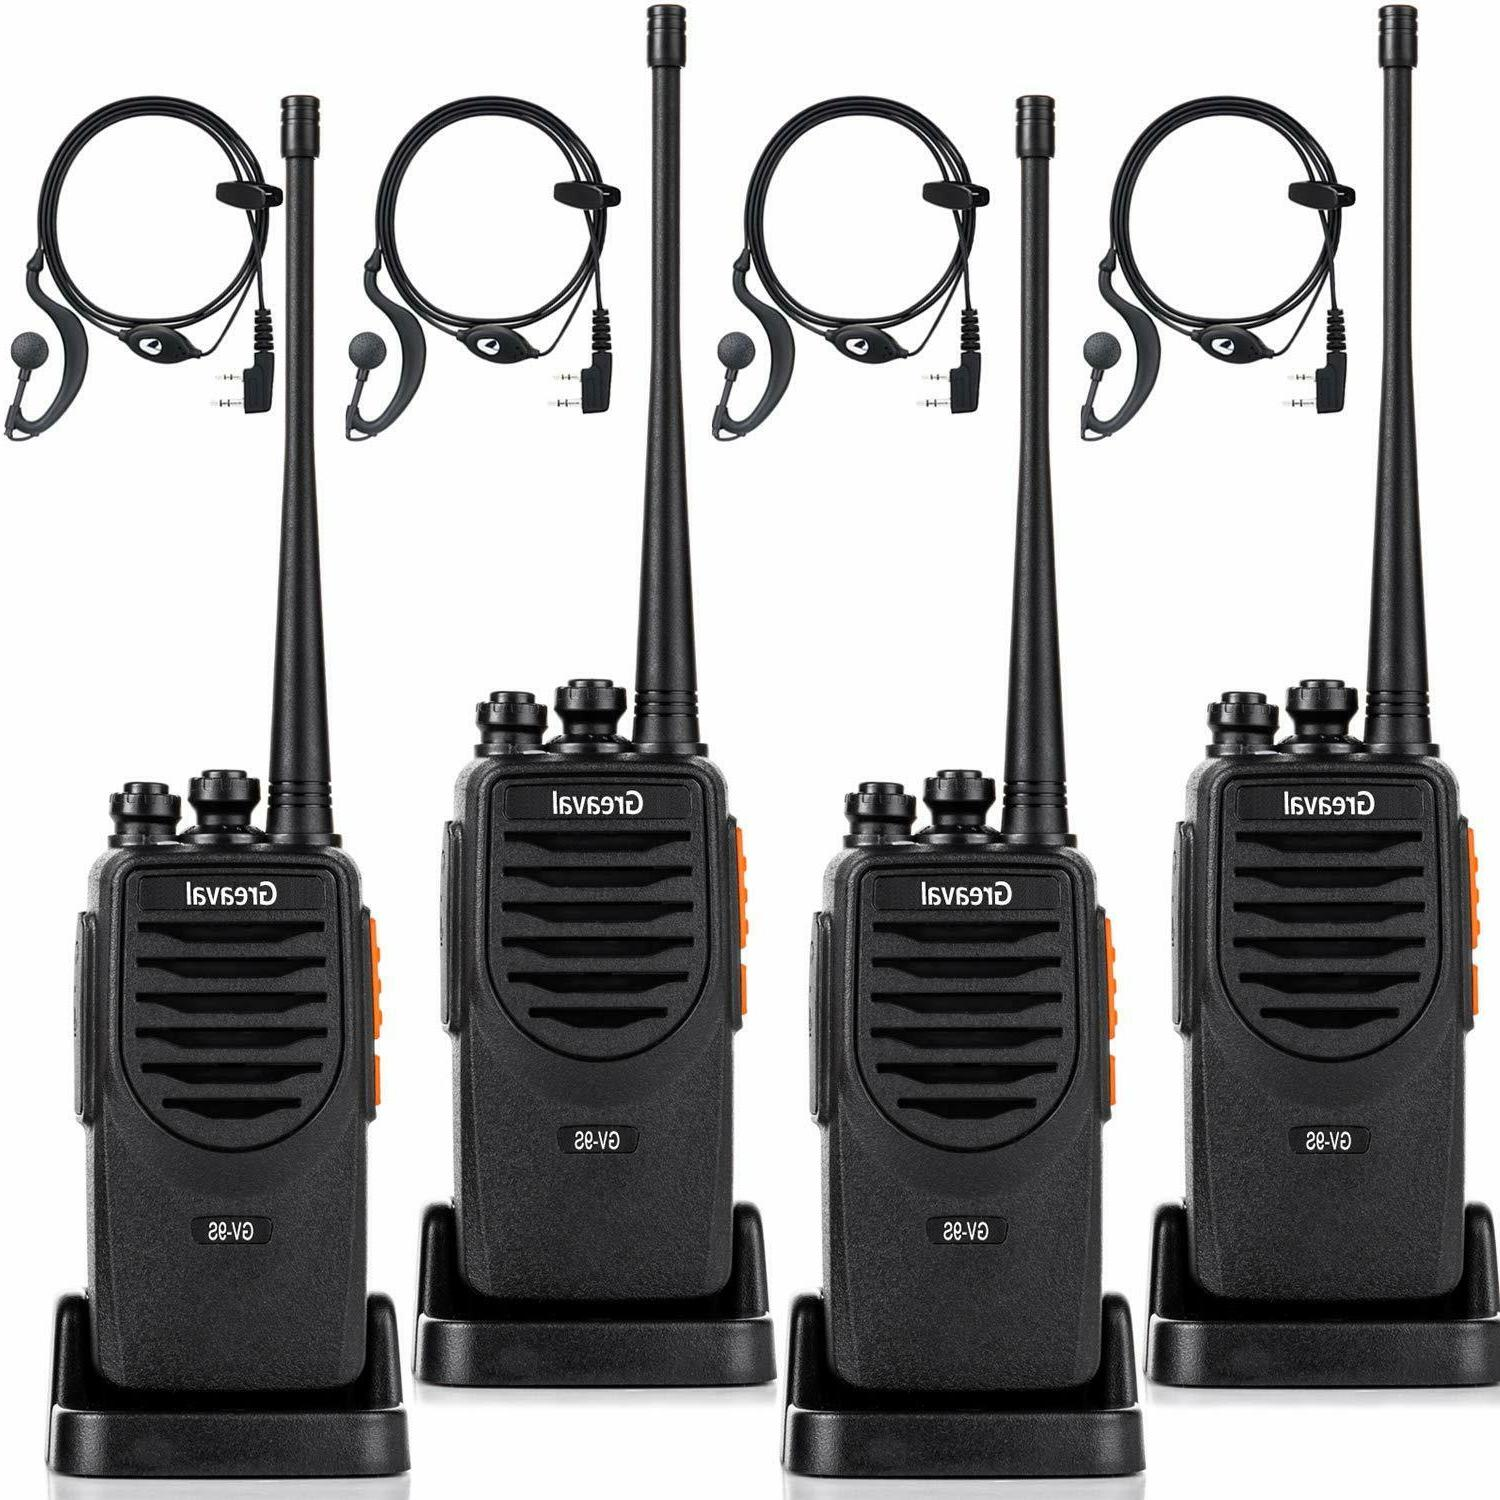 Greaval GV-9S Walkie Talkies Long Range Rechargeable 2 Way R